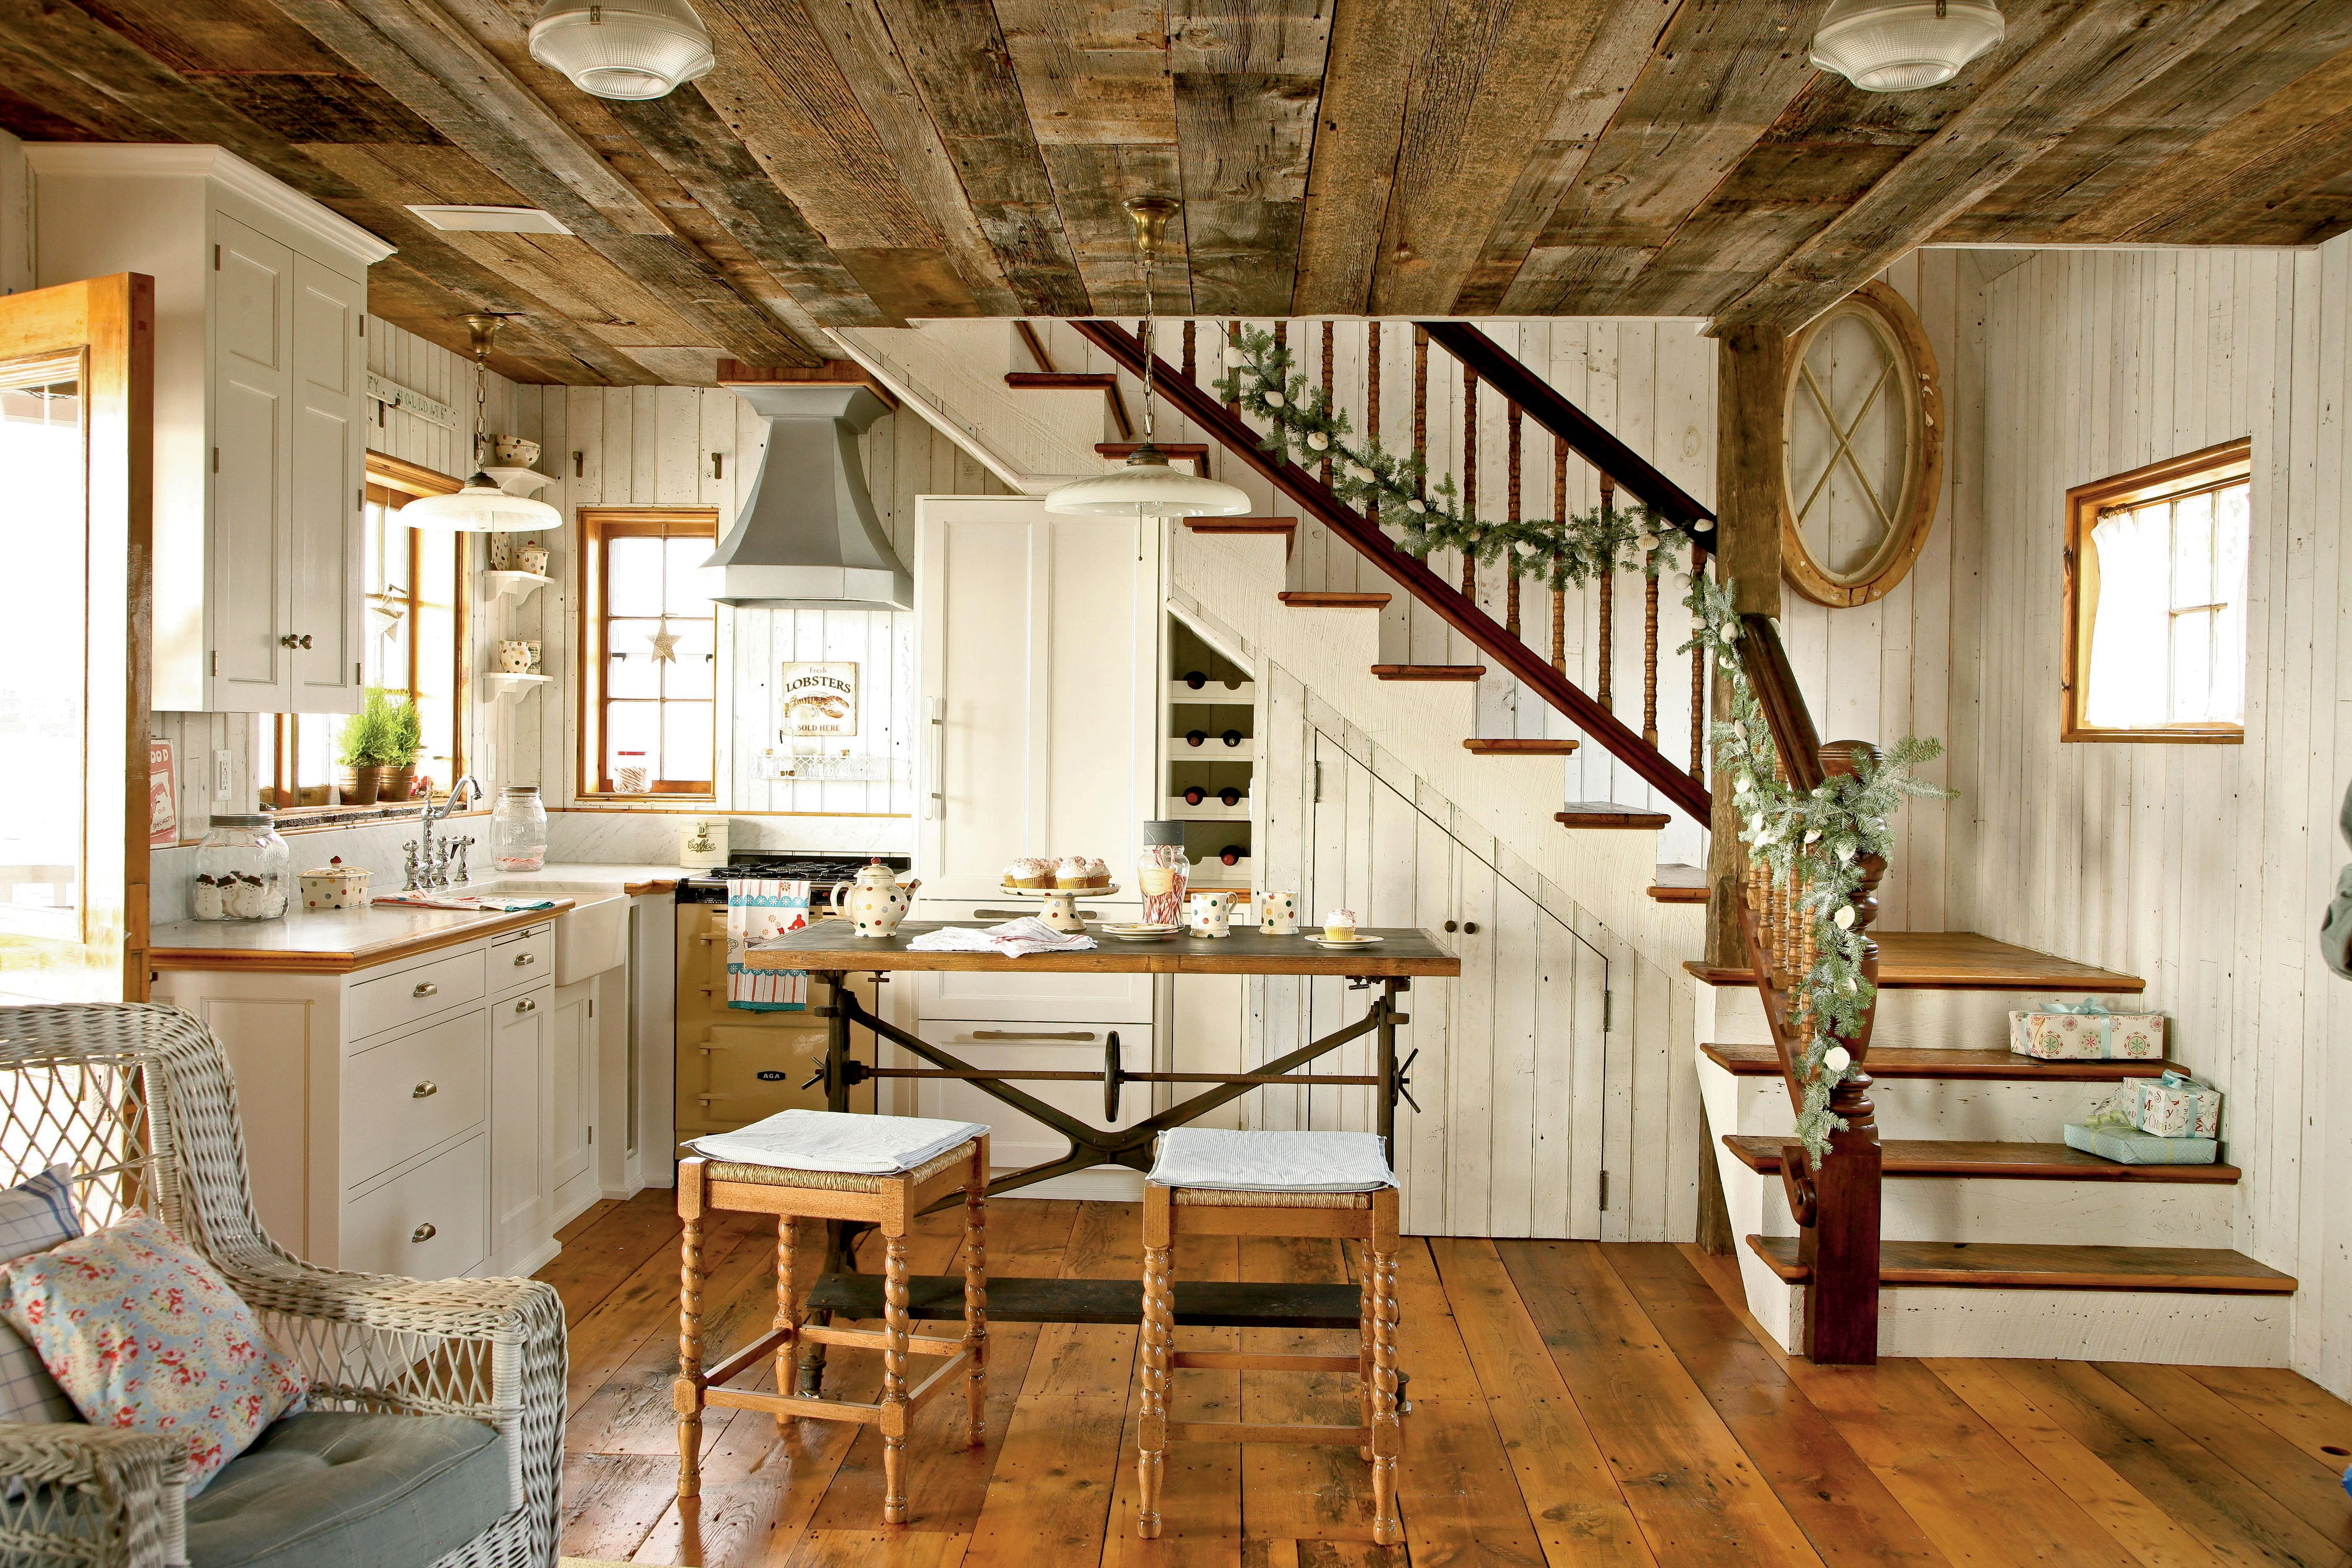 The Adorably Cozy Kitchen With Its Simple White Cabinetry And Walls And Tiny Stove And Hood Is Cottage Kitchens Cottage Style Interiors Cottage Interiors